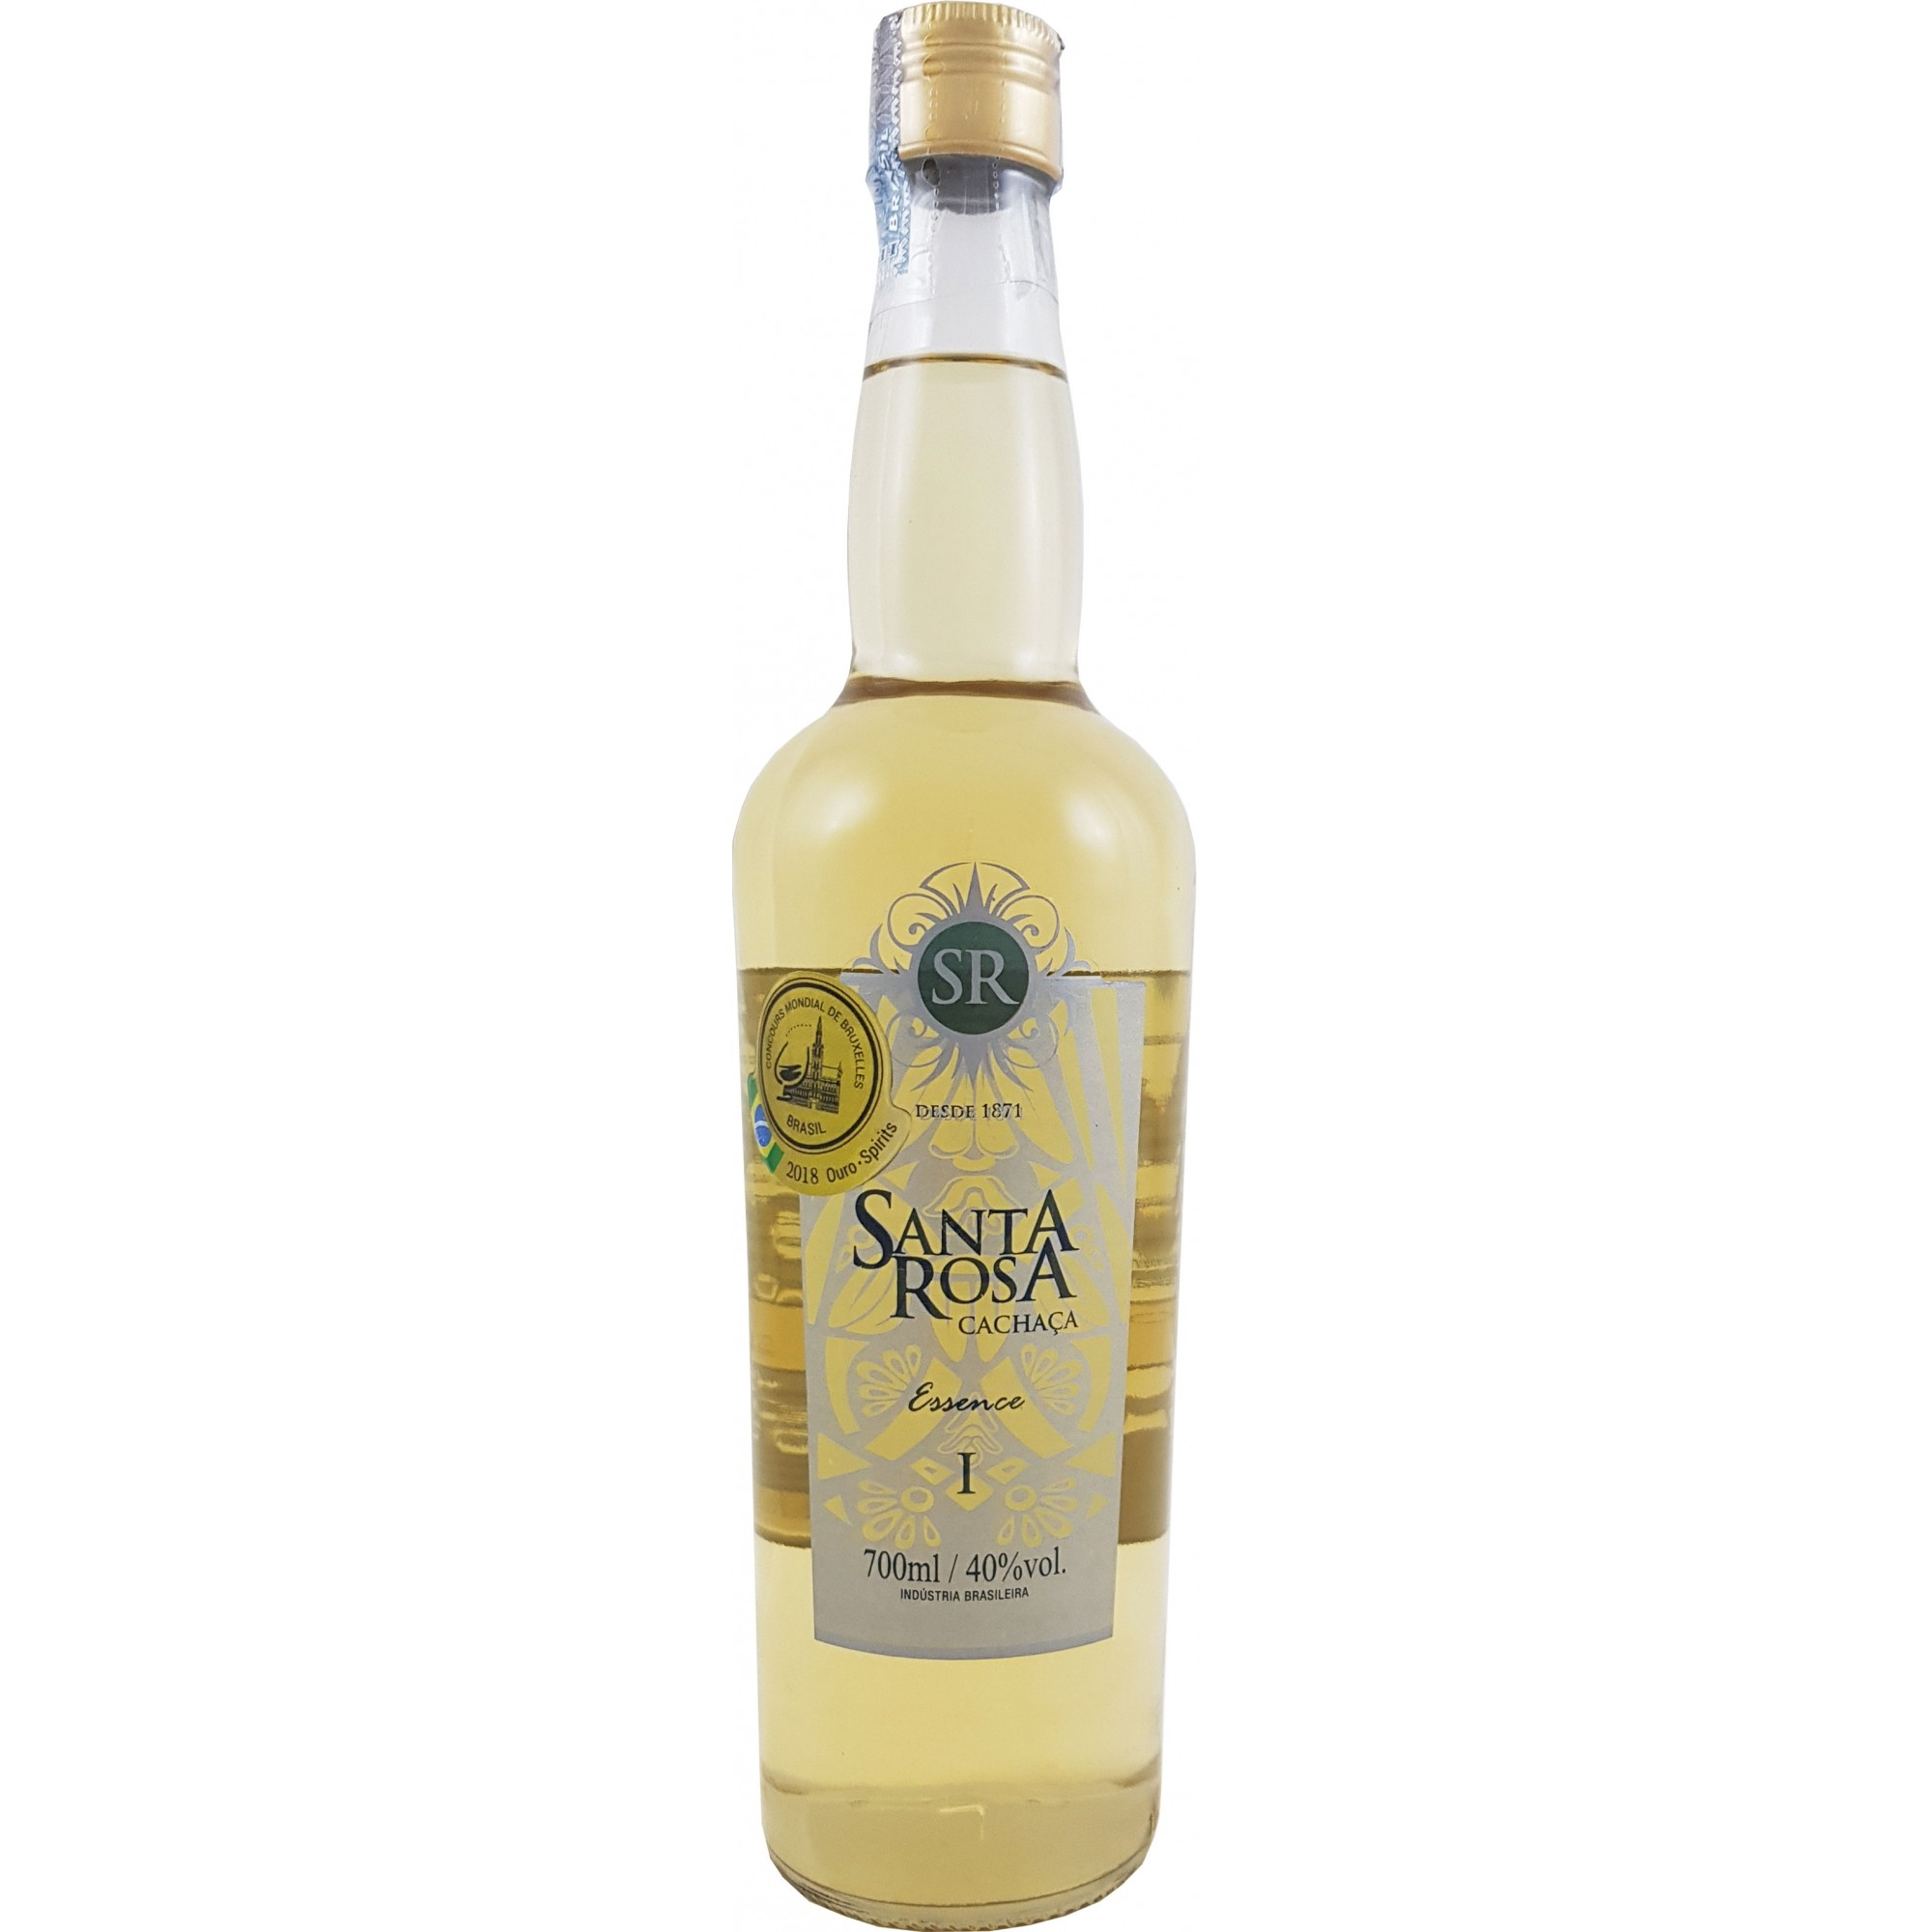 Cachaça Santa Rosa Essence I 700ml